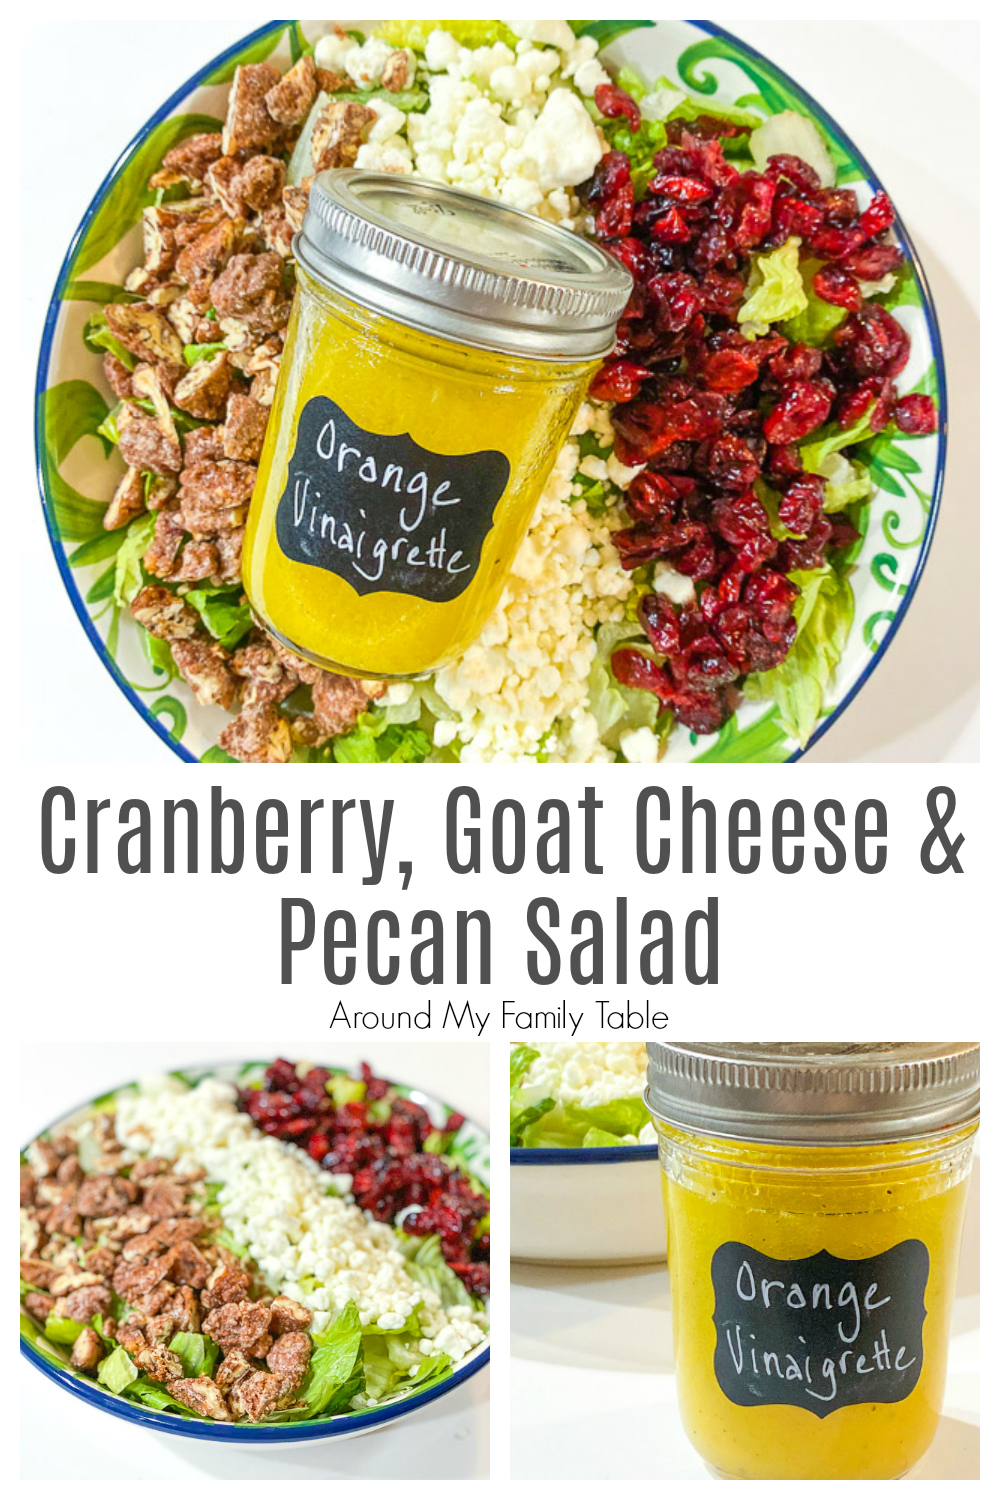 Serve this easy Cranberry, Goat Cheese, & Pecan Salad with Orange Vinaigrette with supper tonight. There are so many delicious add ins to this salad that everyone loves it!